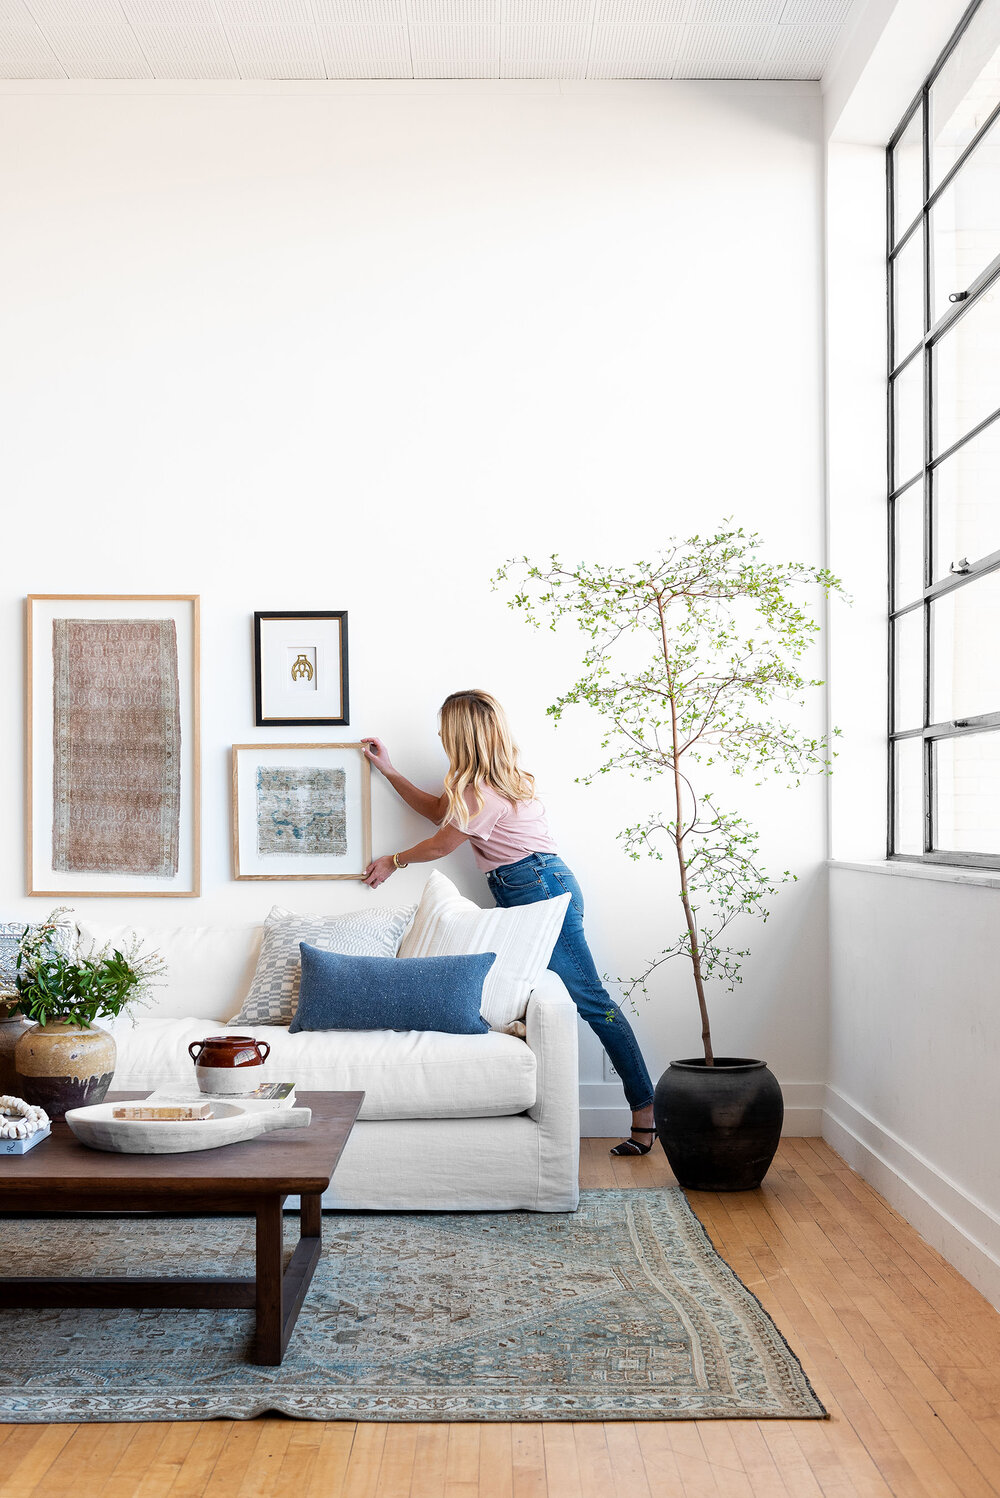 How We Style Spaces To Feel Lived-in